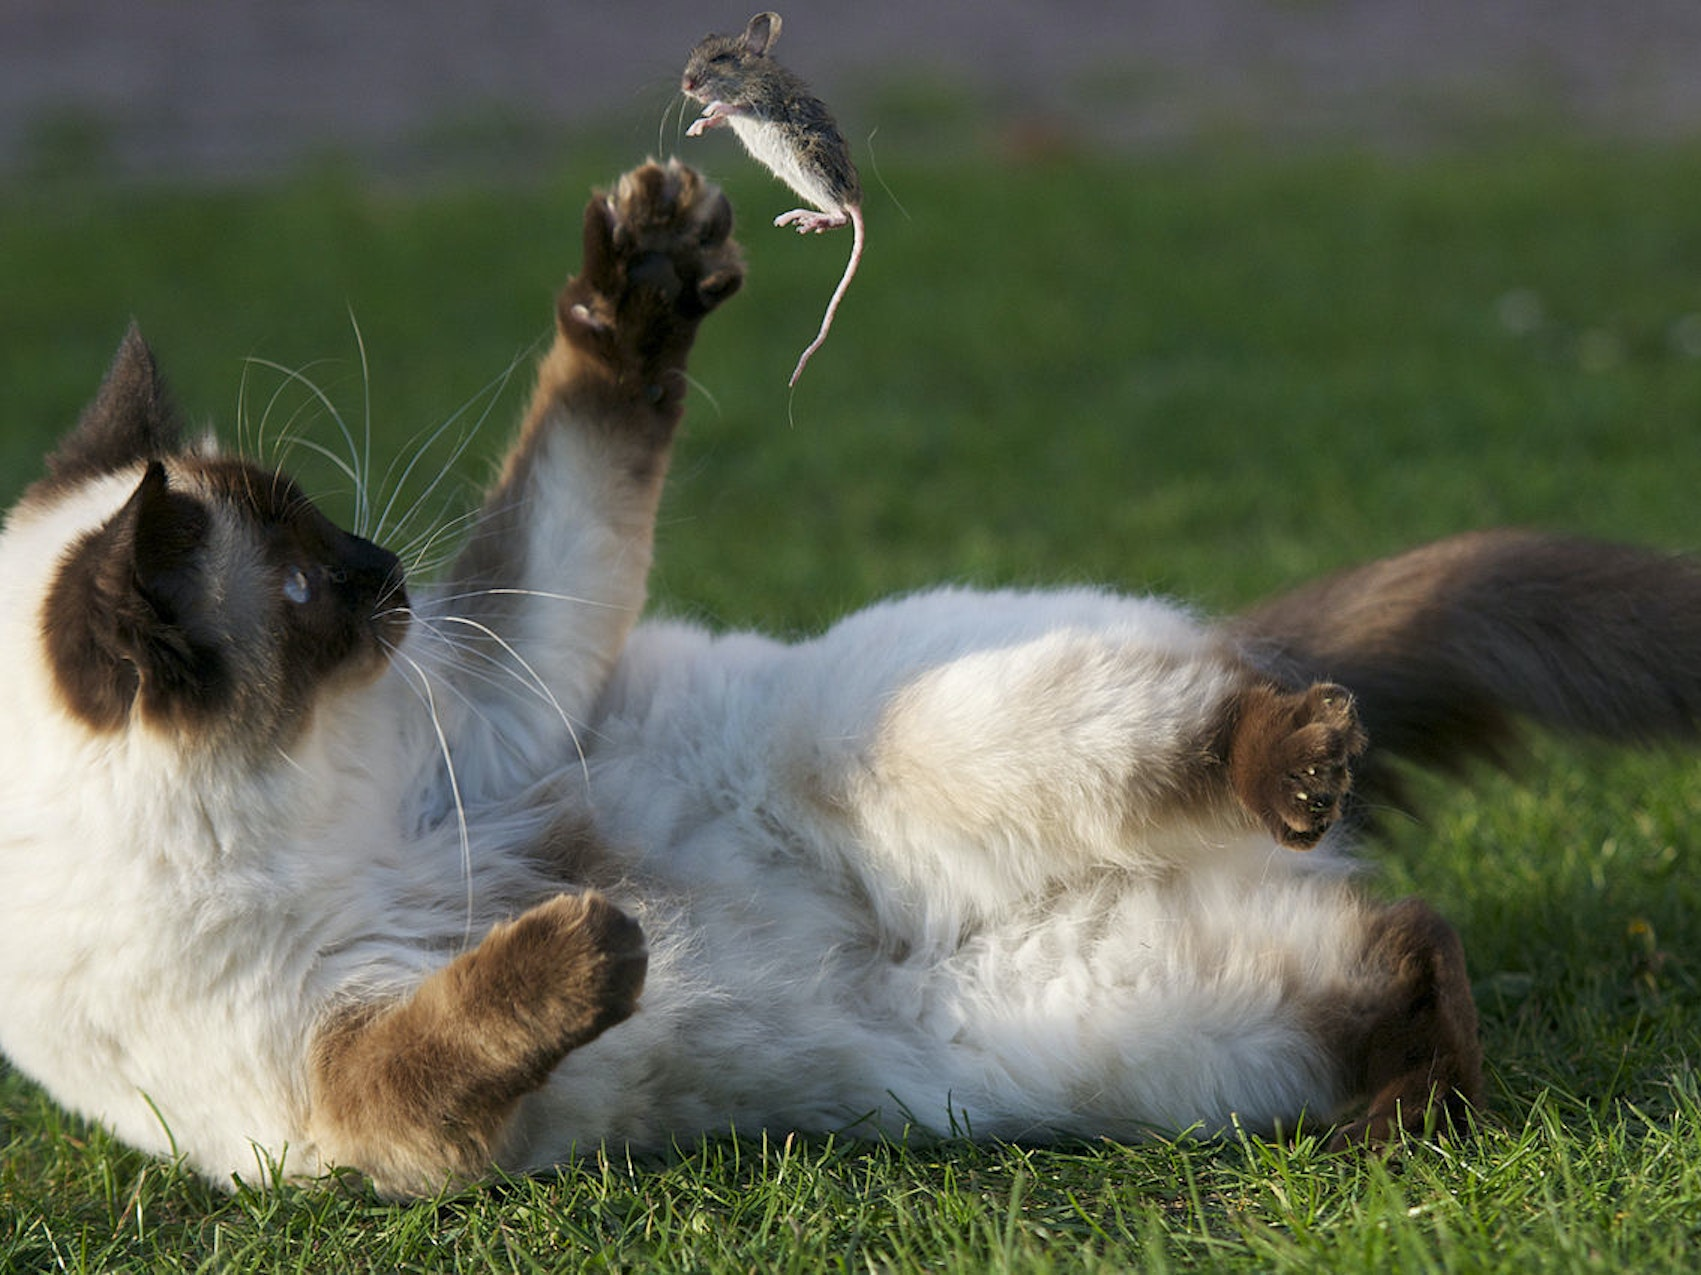 A cat that is playing with a caught mouse. Cats play with their prey to weaken or exhaust them before making a kill.